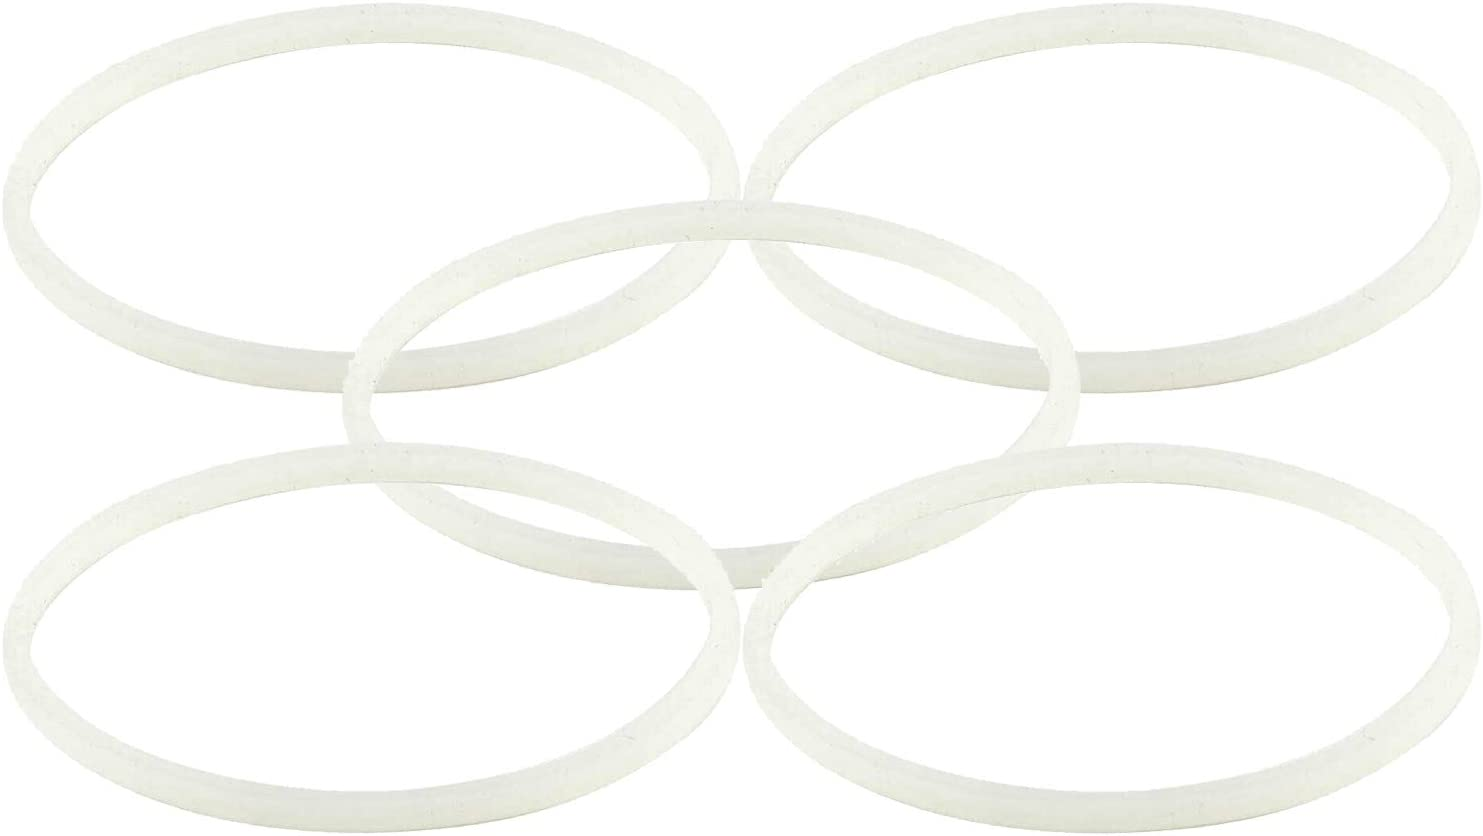 5 Pack Rubber Gaskets Replacement Seal White O-Ring for Nutri Ninja Pro Blender Replacement For Ninjia BL660 BL663 BL663CO BL665Q BL740 BL770 BL773CO BL771 BL772 BL780 BL780CO (3.13 inch Gaskets)